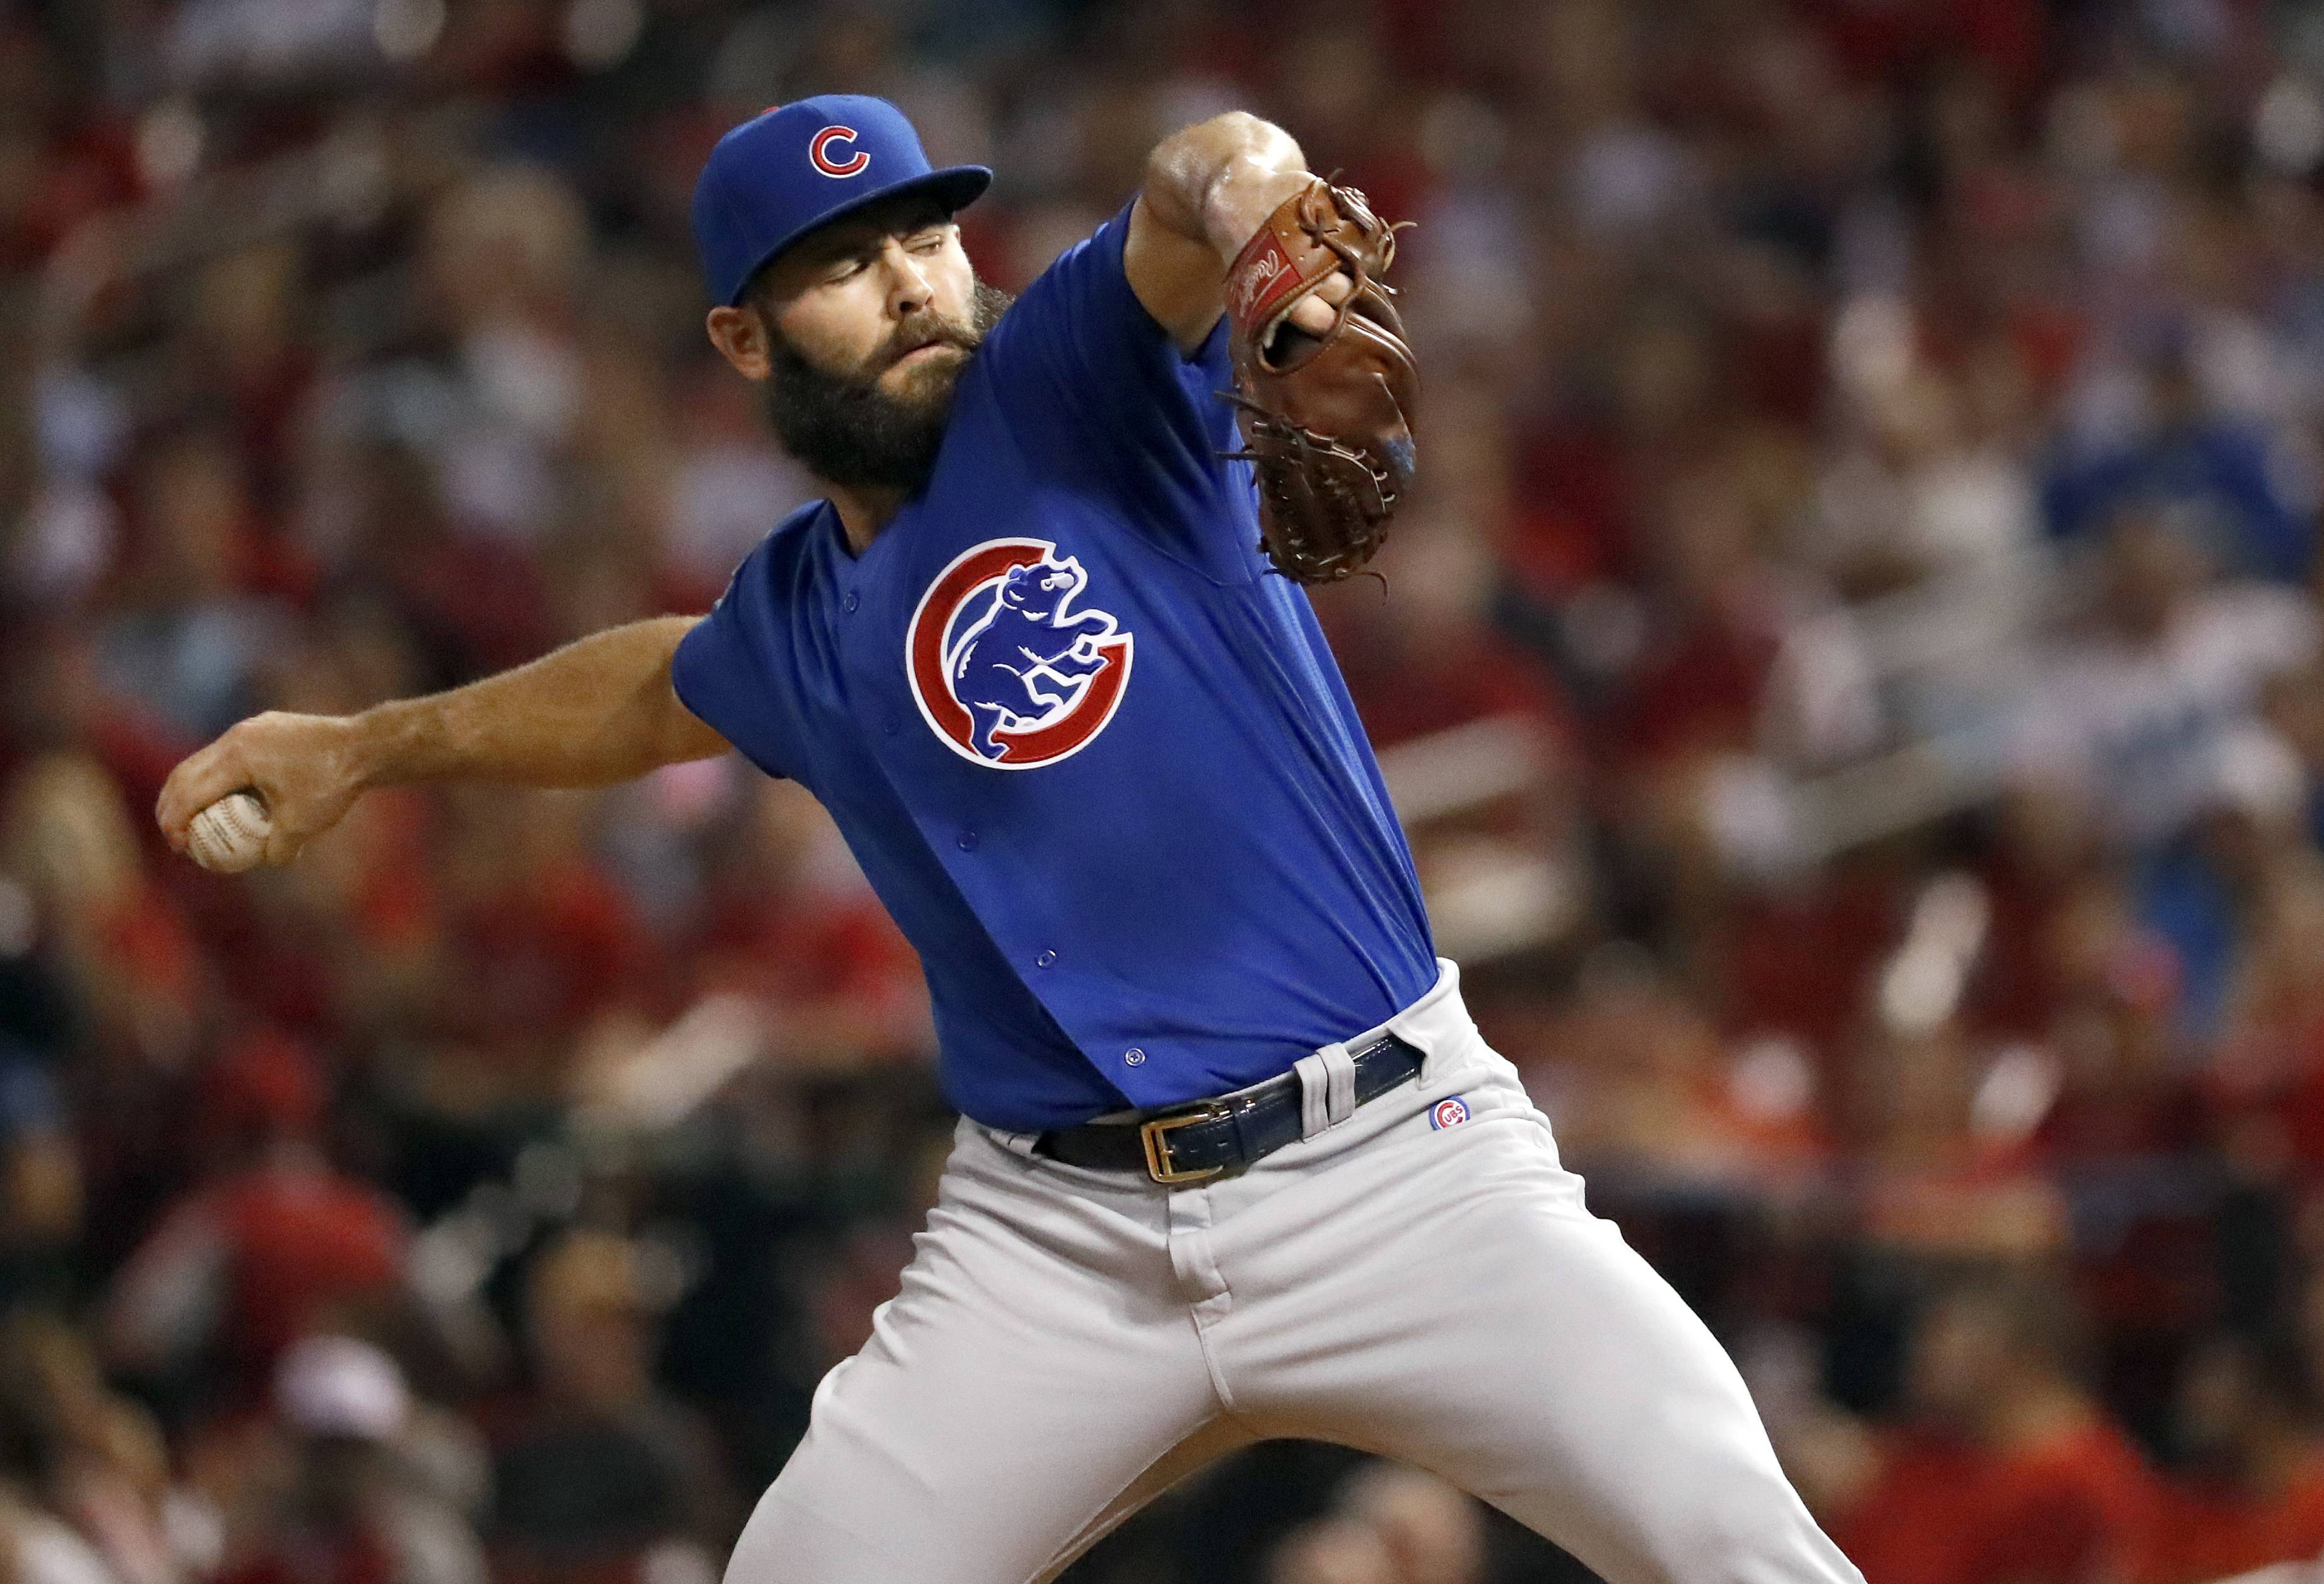 Chicago Cubs starting pitcher Jake Arrieta throws Tuesday during the first inning against the St. Louis Cardinals. Arrieta likely will not pitch for the Cubs before the start of the playoffs.